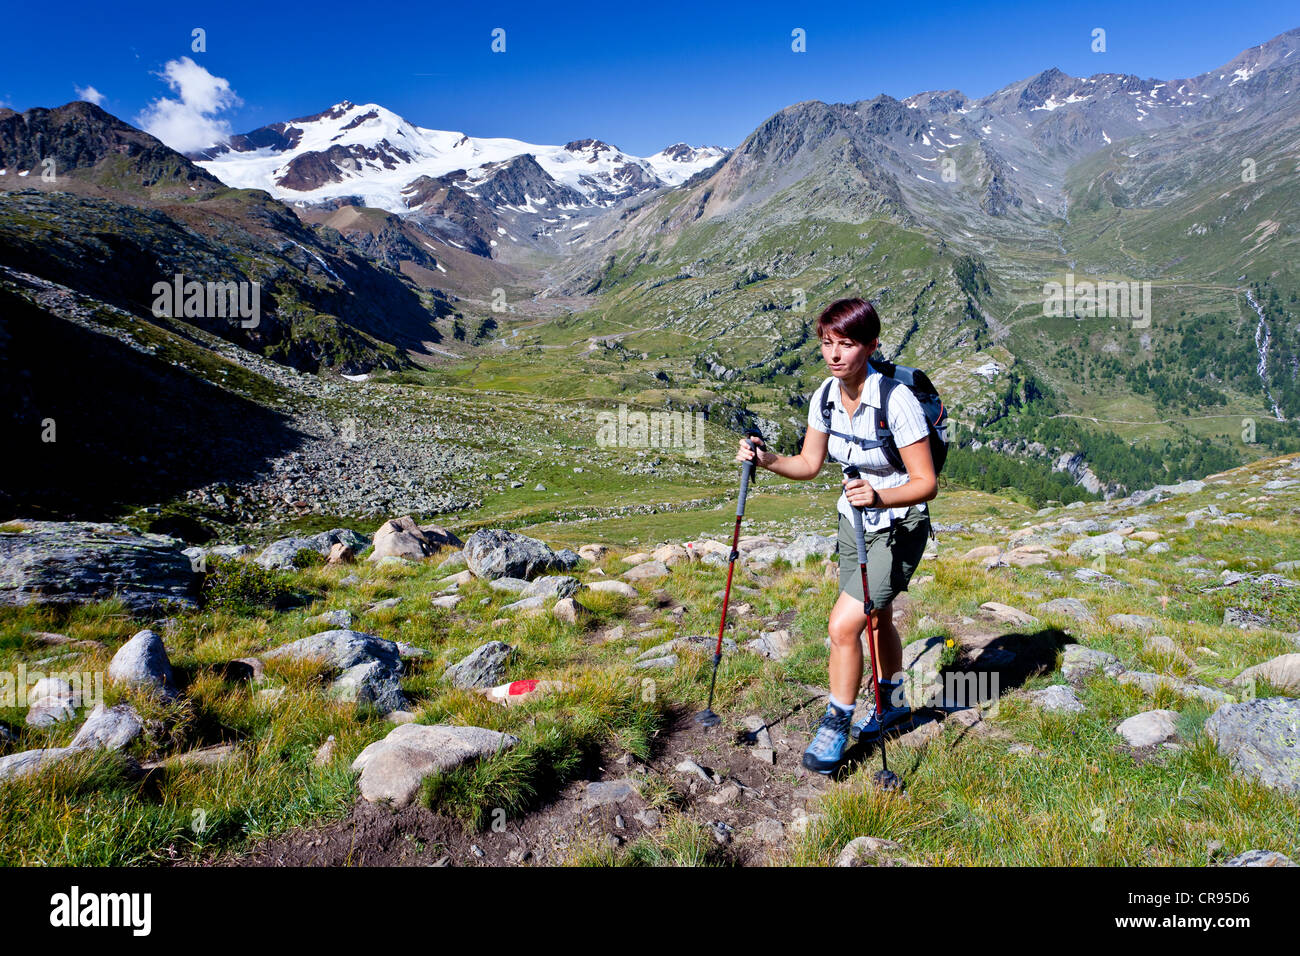 Hiker ascending to Mt. Rotspitz in the Martell vally, behind Mt. Cevedale and Mt. Zufallspitz, South Tyrol, Italy, - Stock Image